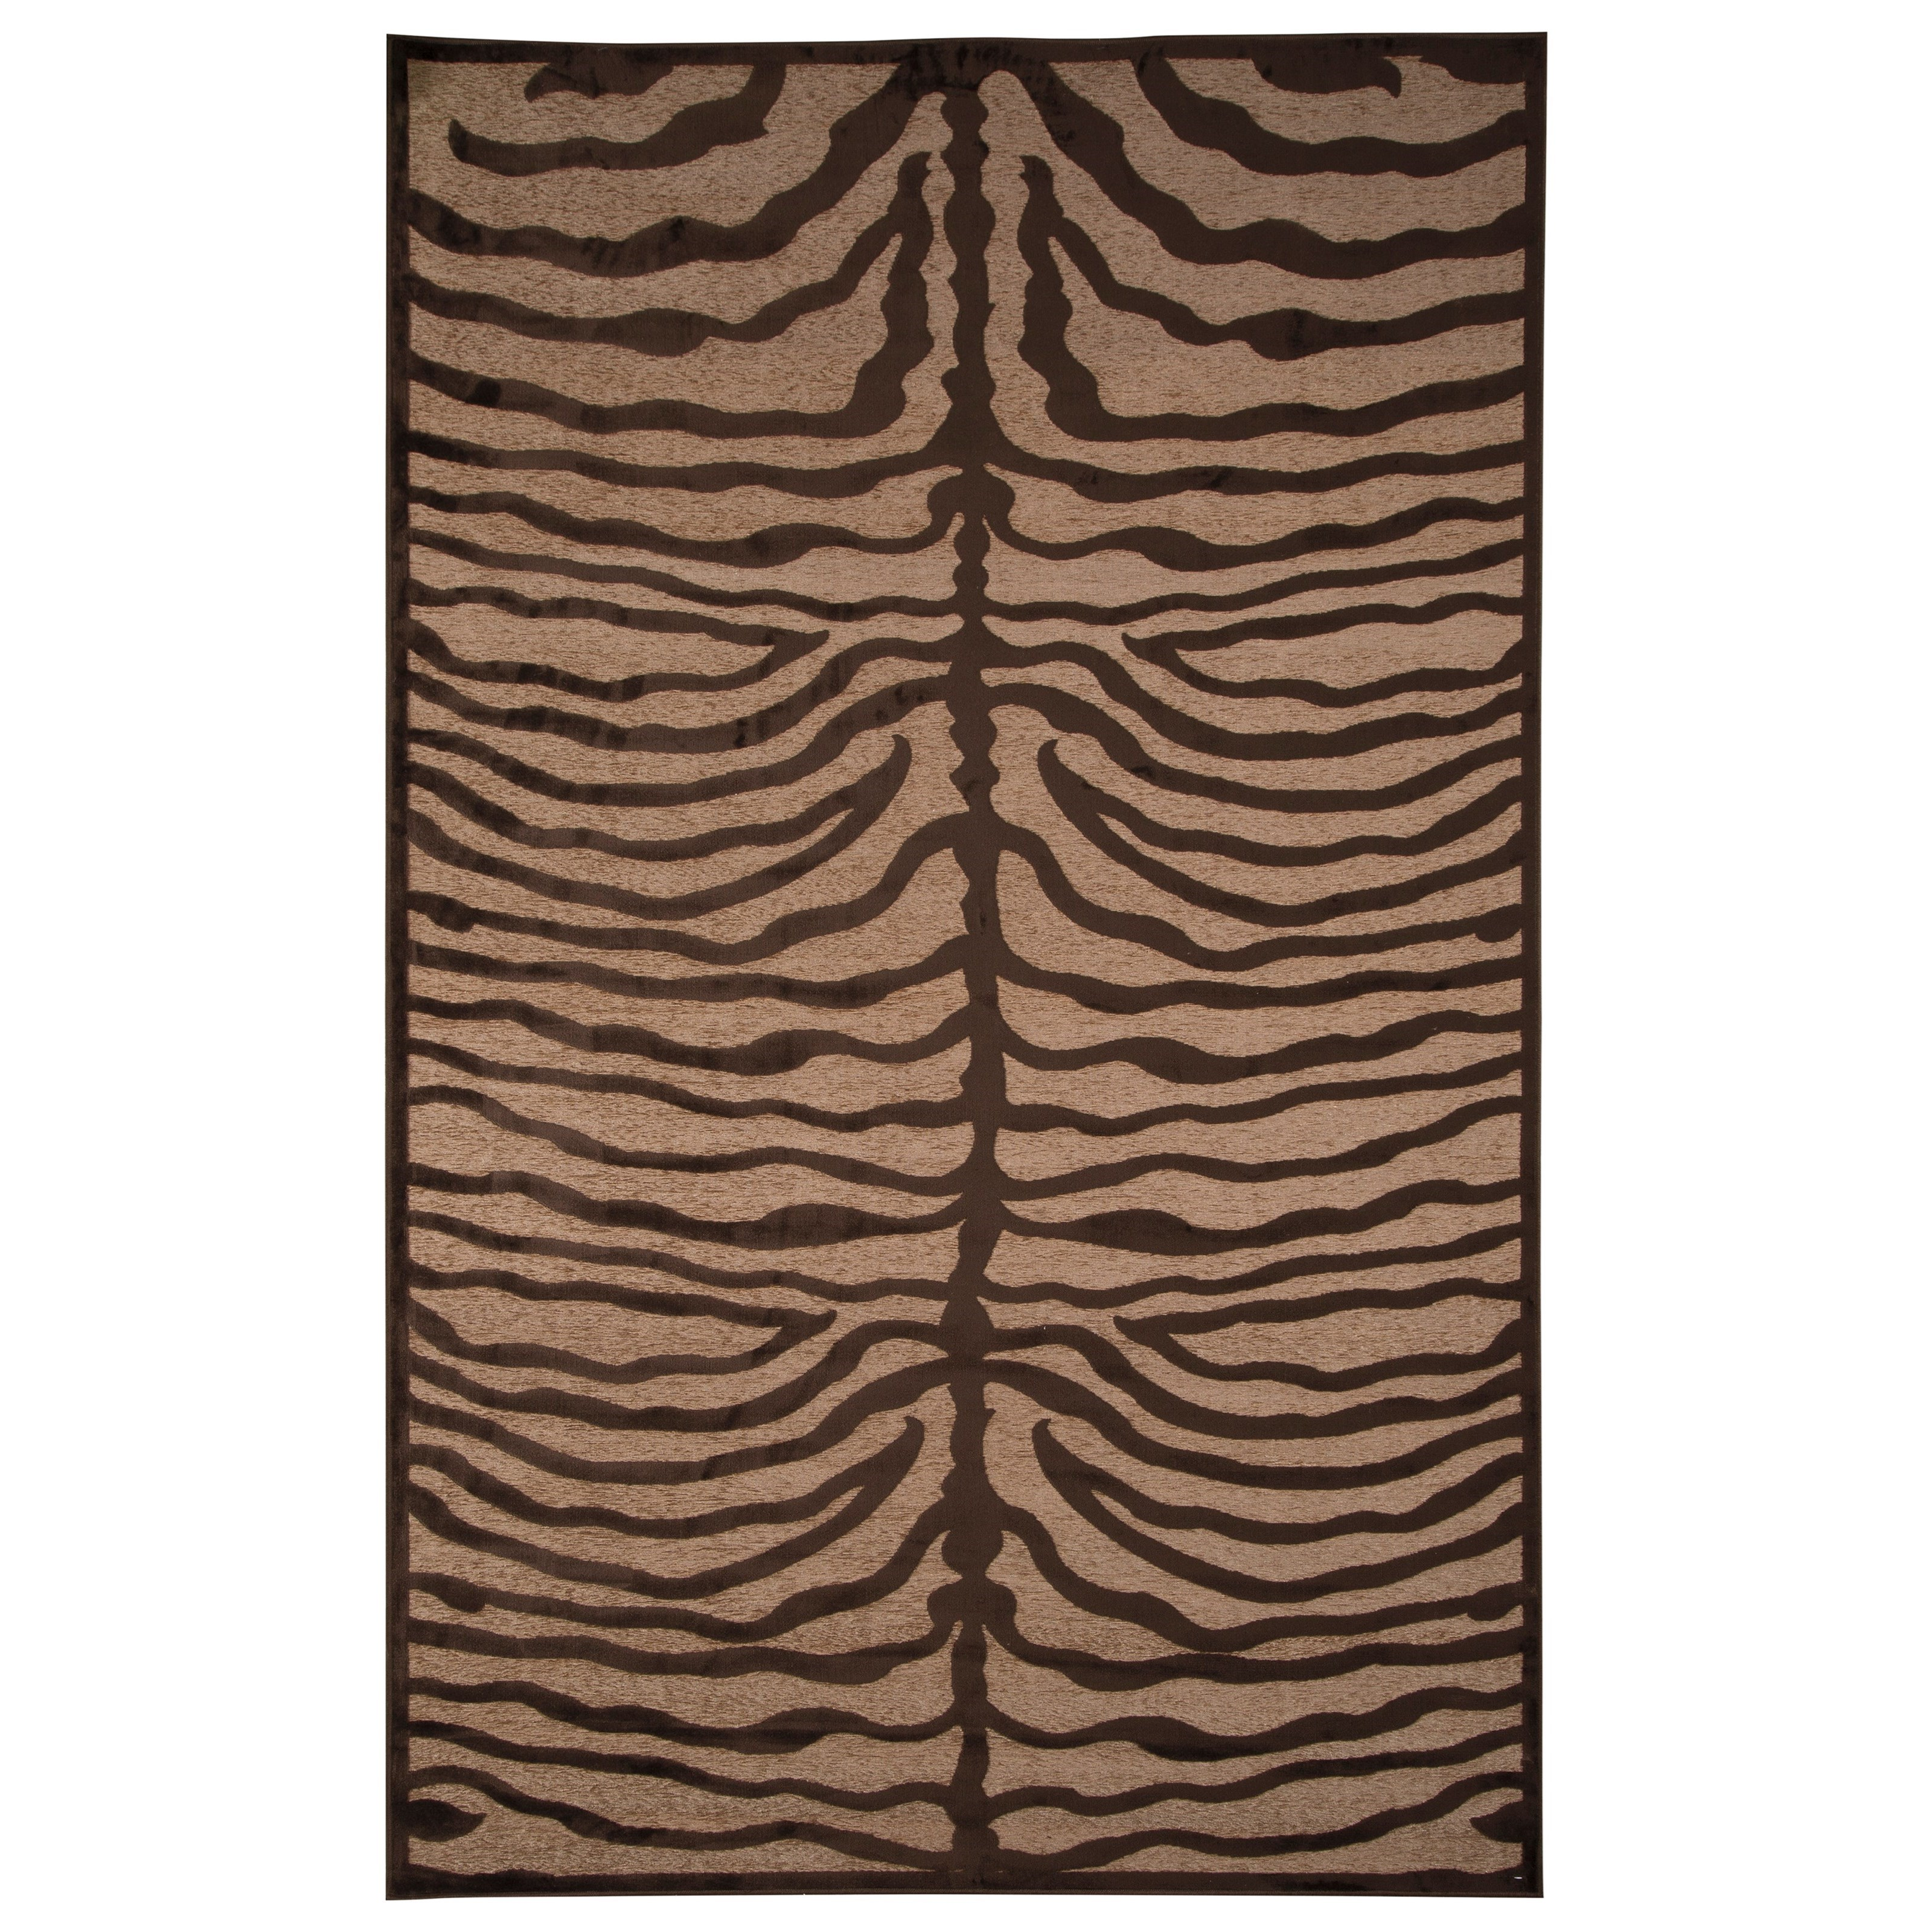 Signature Design by Ashley Contemporary Area Rugs Tafari Brown Large Rug - Item Number: R400371